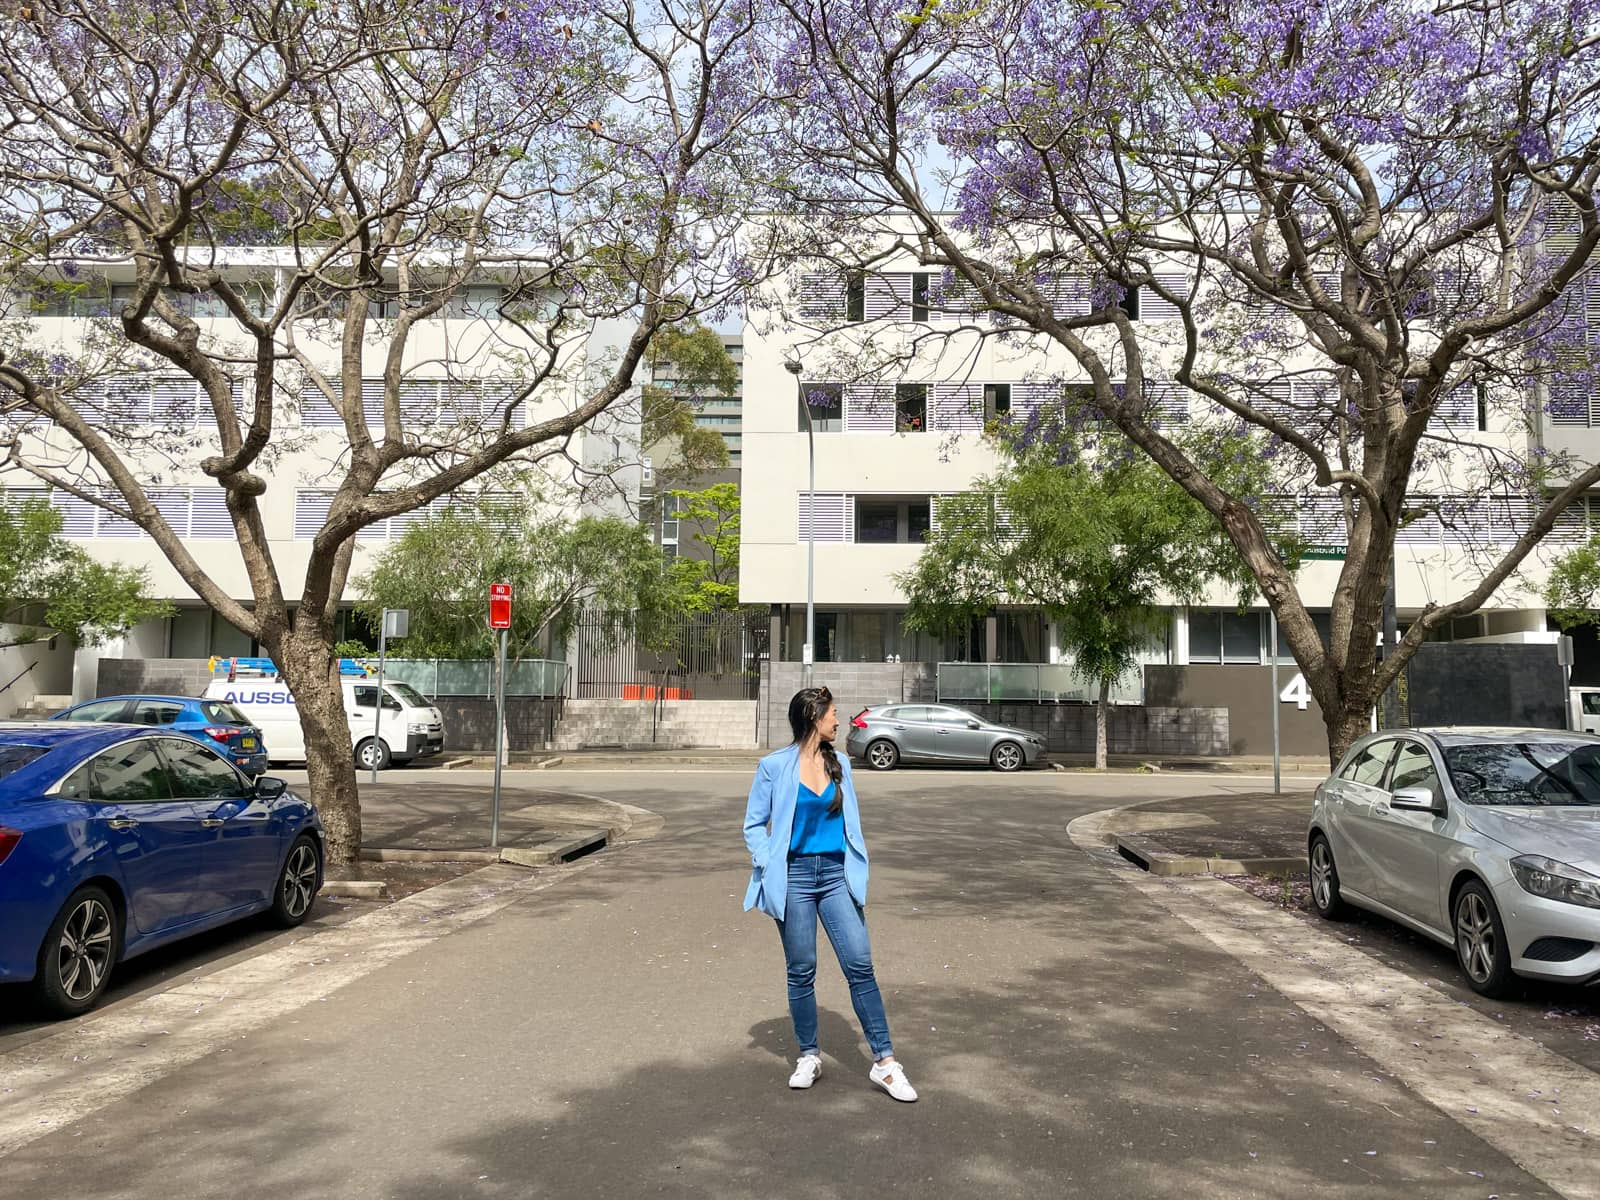 A woman with fair skin and long dark hair braided loosely in a side braid, standing in the middle of a quiet street. She is wearing a light blue blazer and blue jeans with white sneakers. She is looking over her shoulder and above her there is a canopy of jacaranda trees